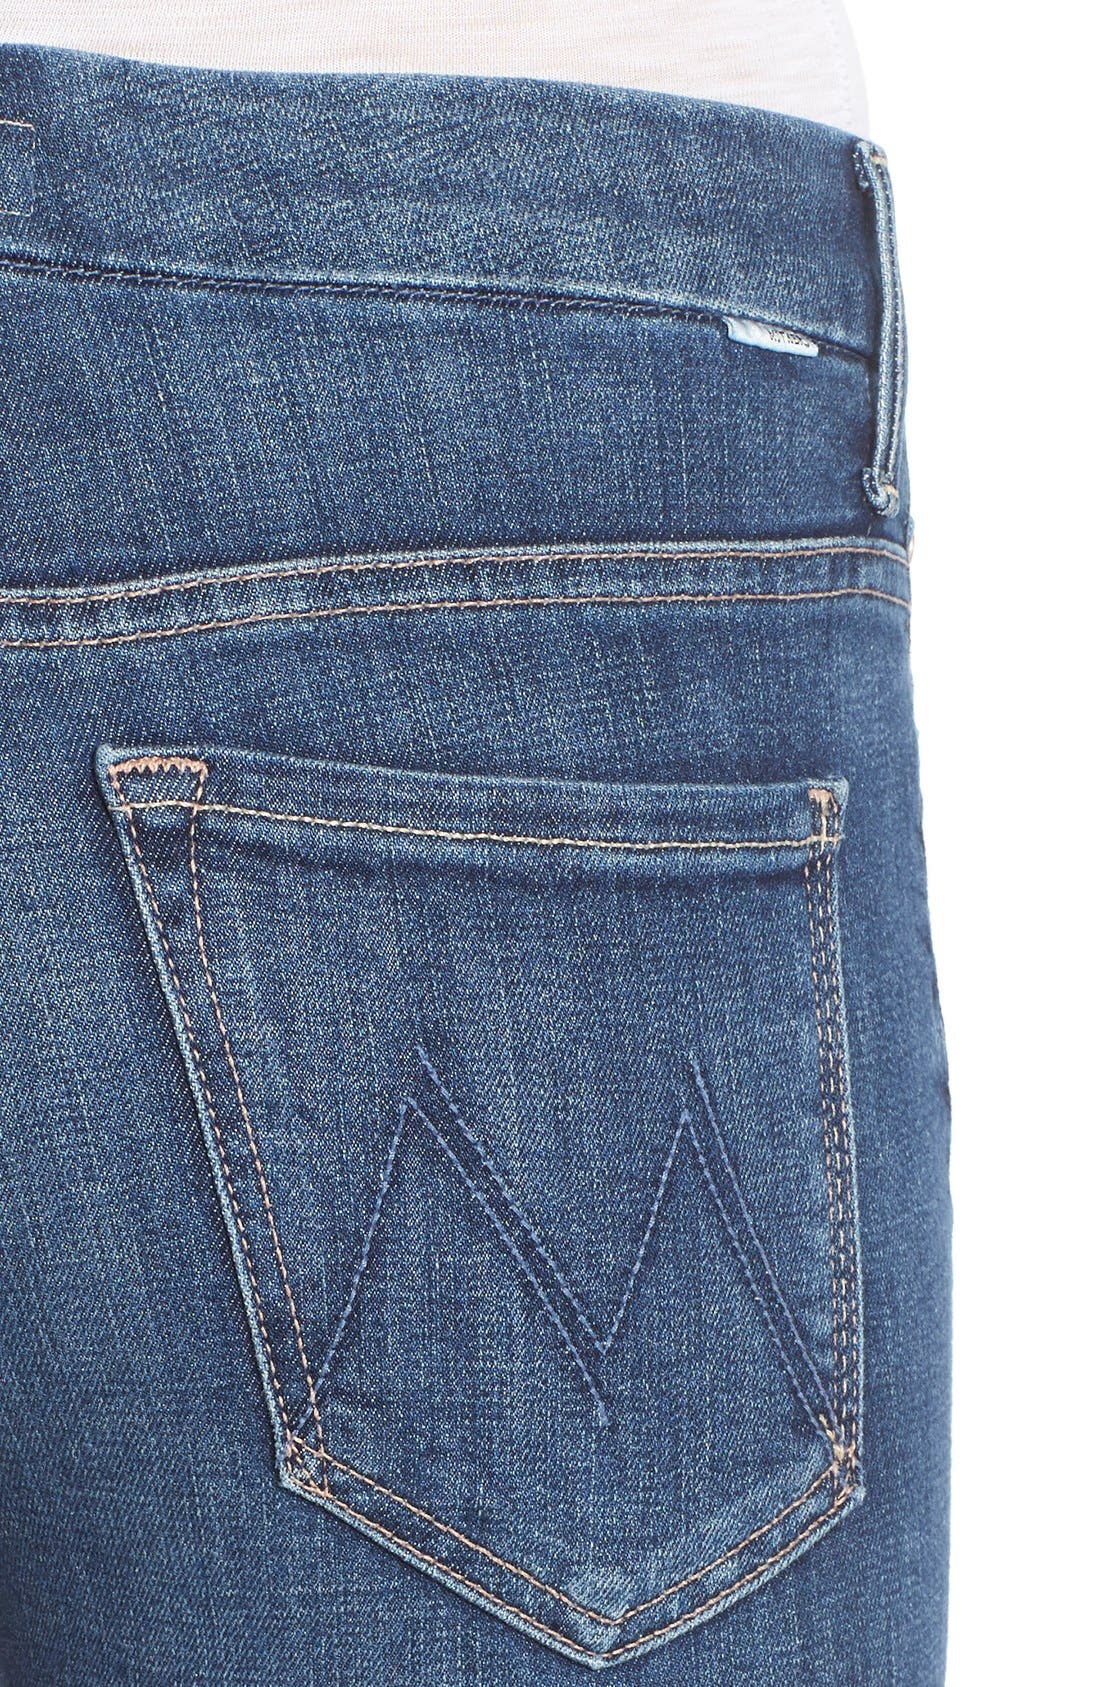 Alternate Image 4  - MOTHER 'The Looker' High Rise Skinny Jeans (Girl Crush)